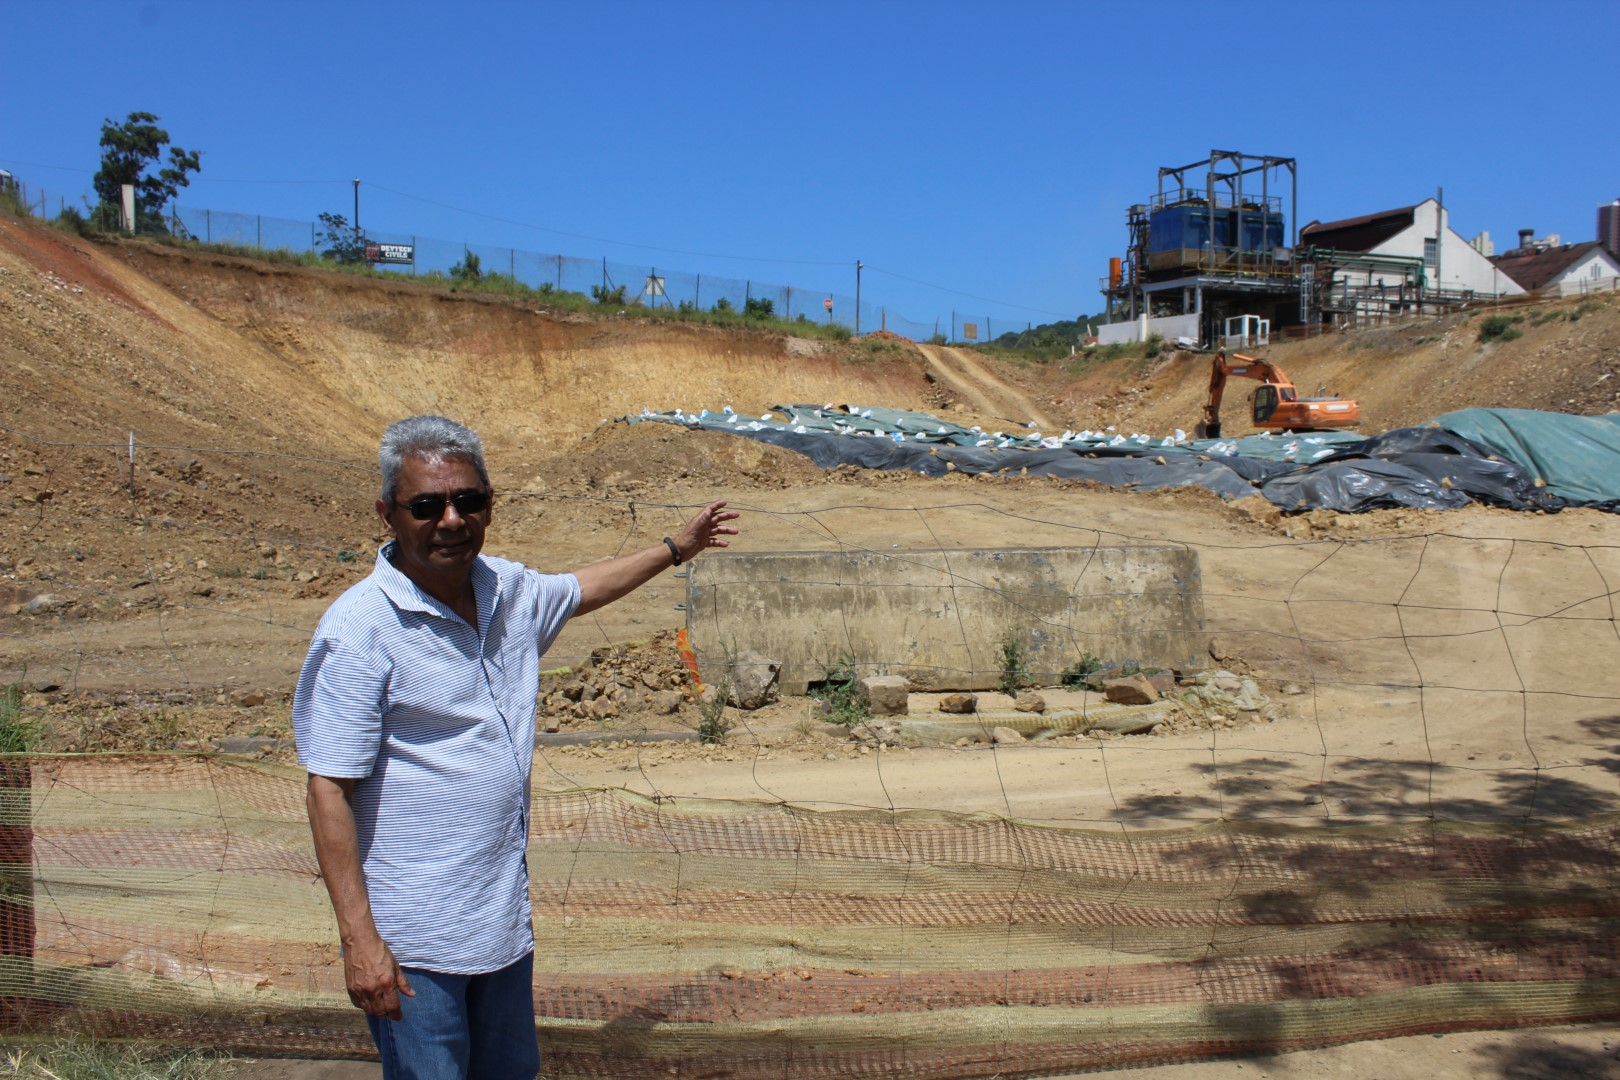 Ward councillor, Bobby Maharajh said work on the re-alignment of Inanda Road was vitally important to alleviating traffic congestion.